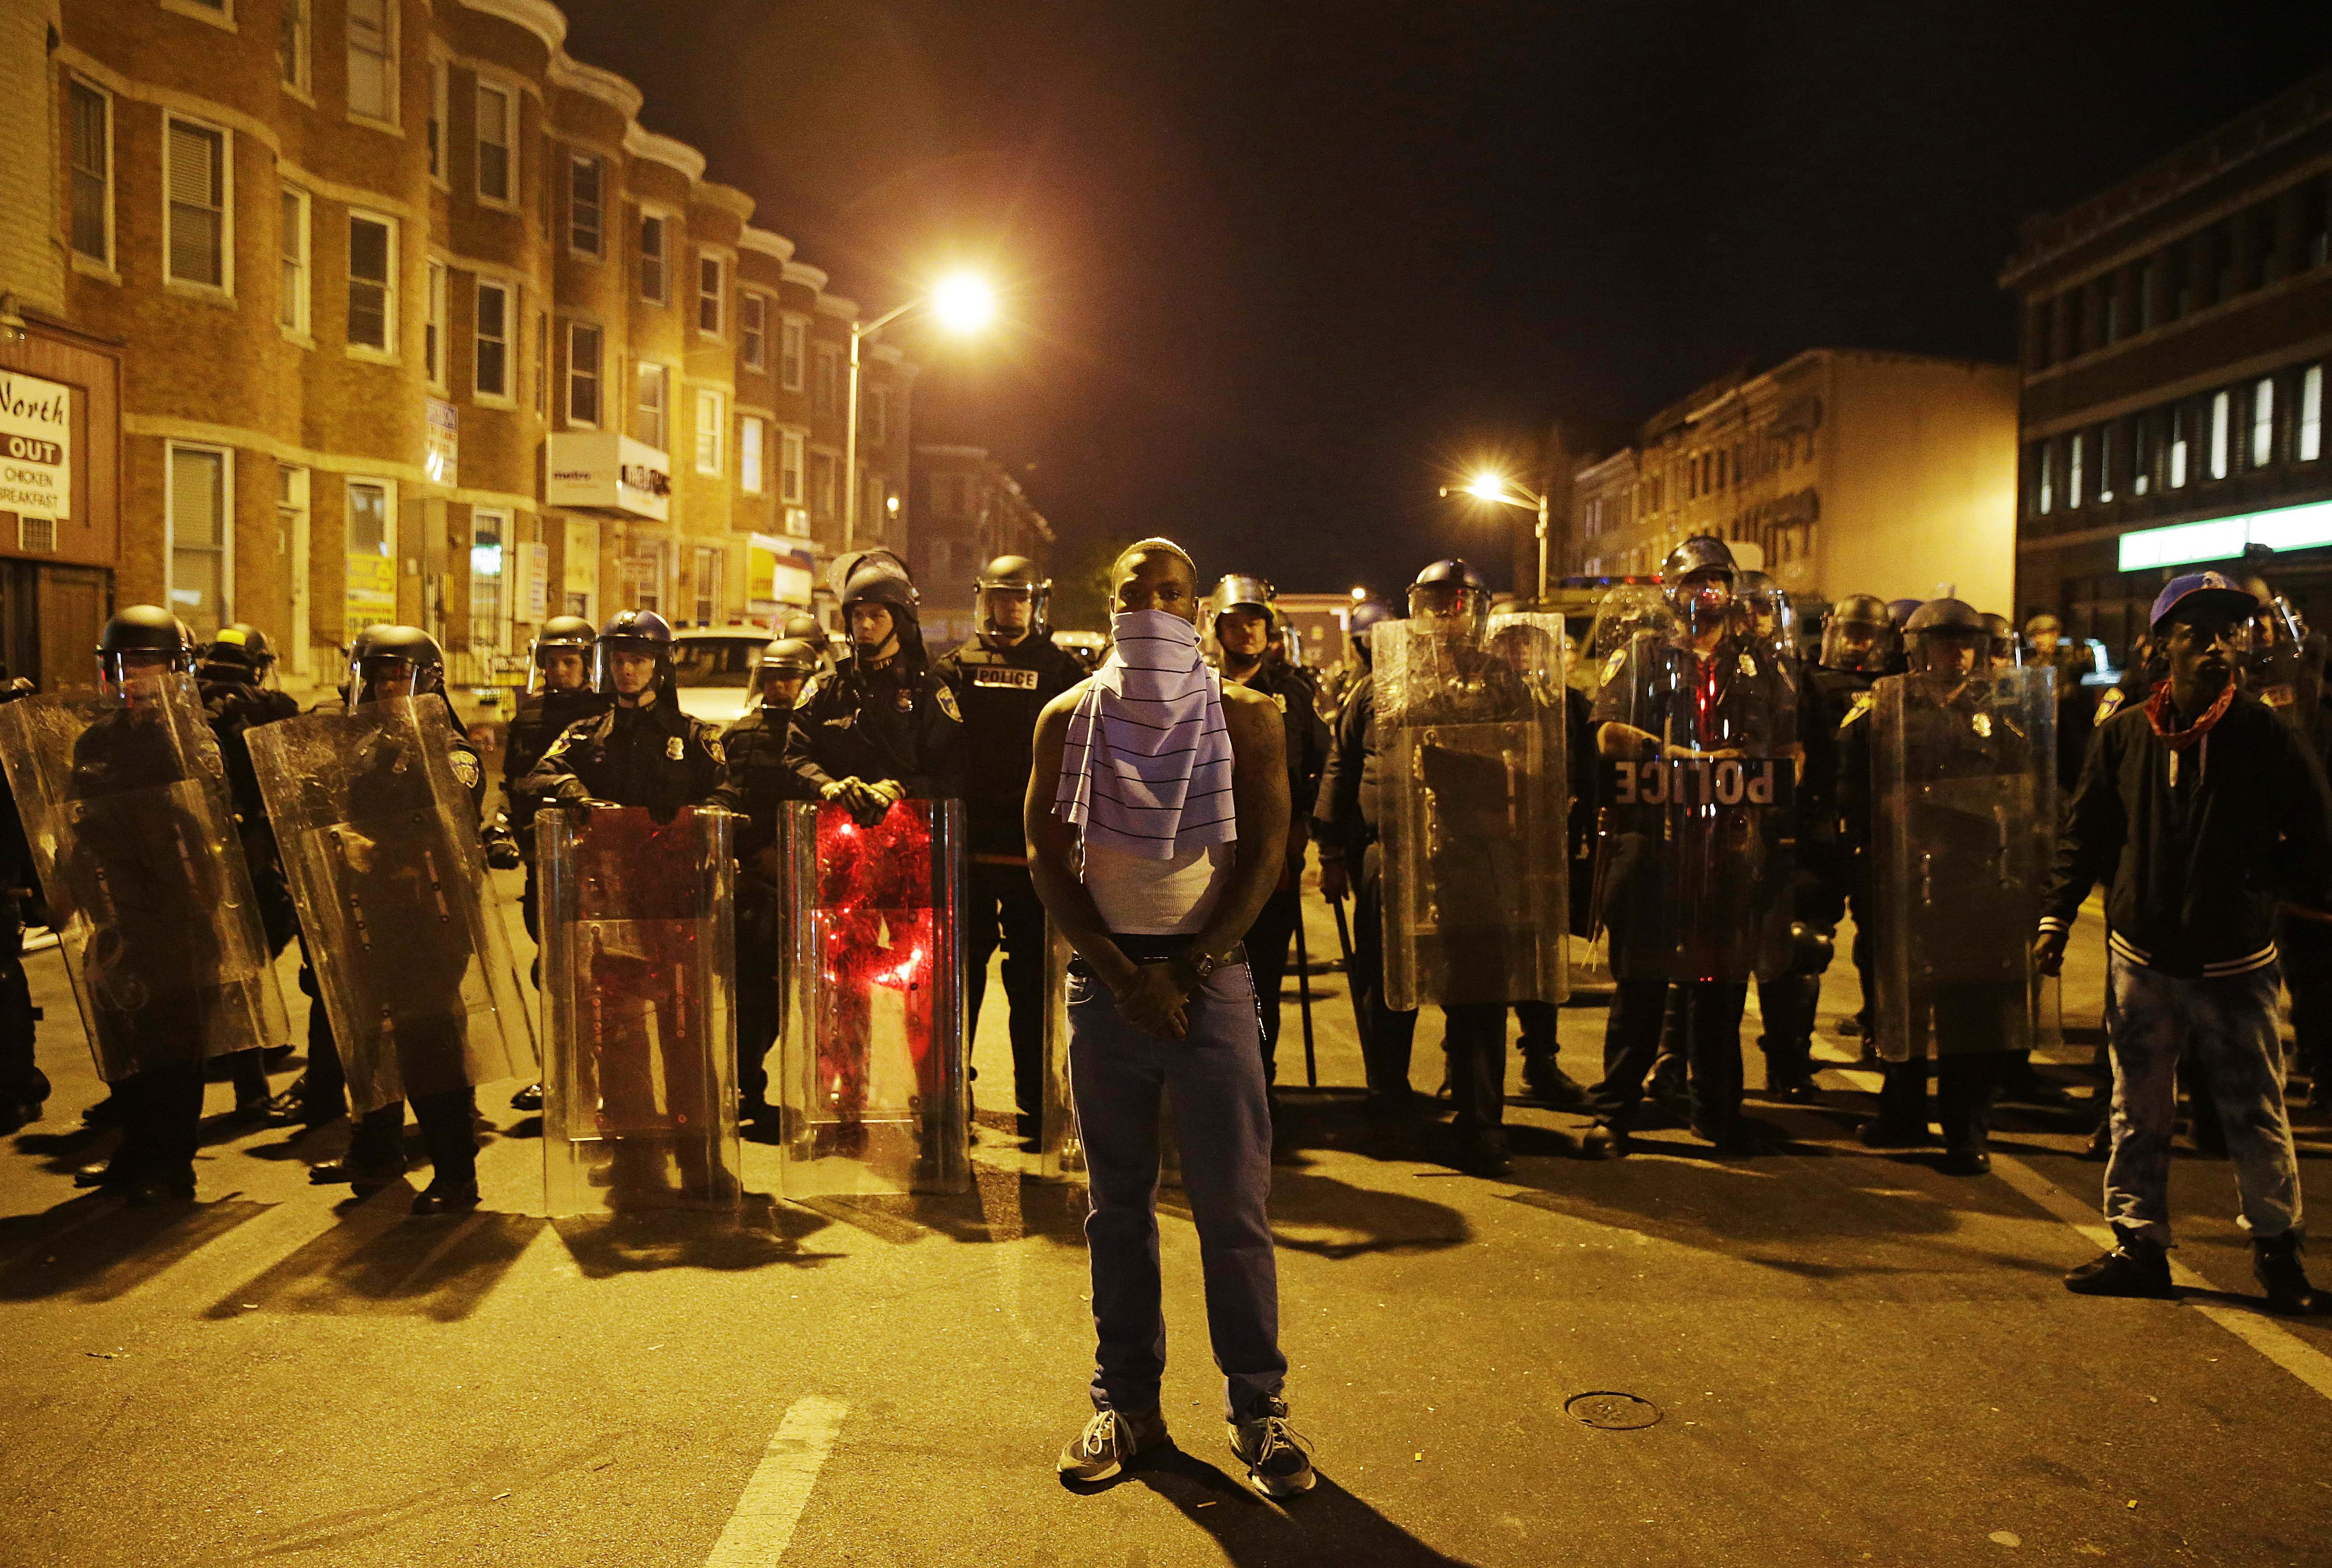 A man stands in front of a line of police officers in riot gear as part of a community effort to disperse the crowd ahead of a 10 p.m. curfew in the wake of Monday's riots following the funeral for Freddie Gray, Tuesday, April 28, 2015, in Baltimore.